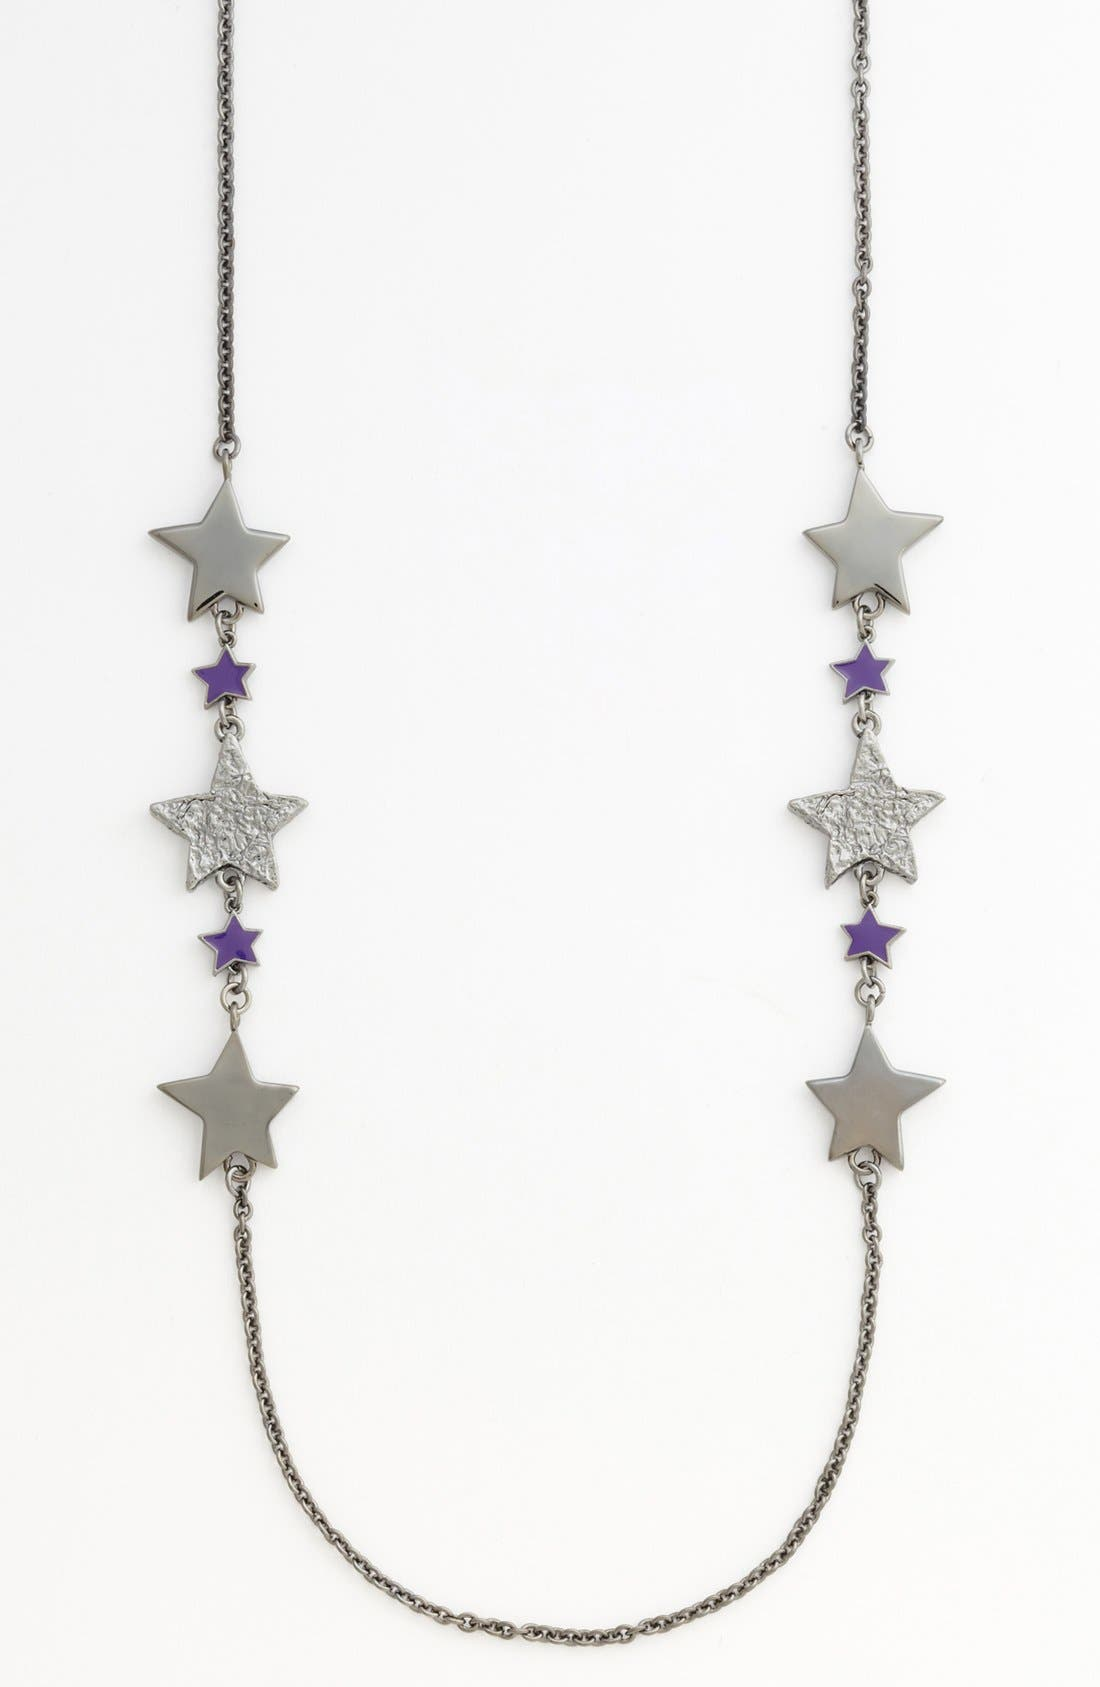 Main Image - MARC BY MARC JACOBS 'Reluctant Stars' Long Station Necklace